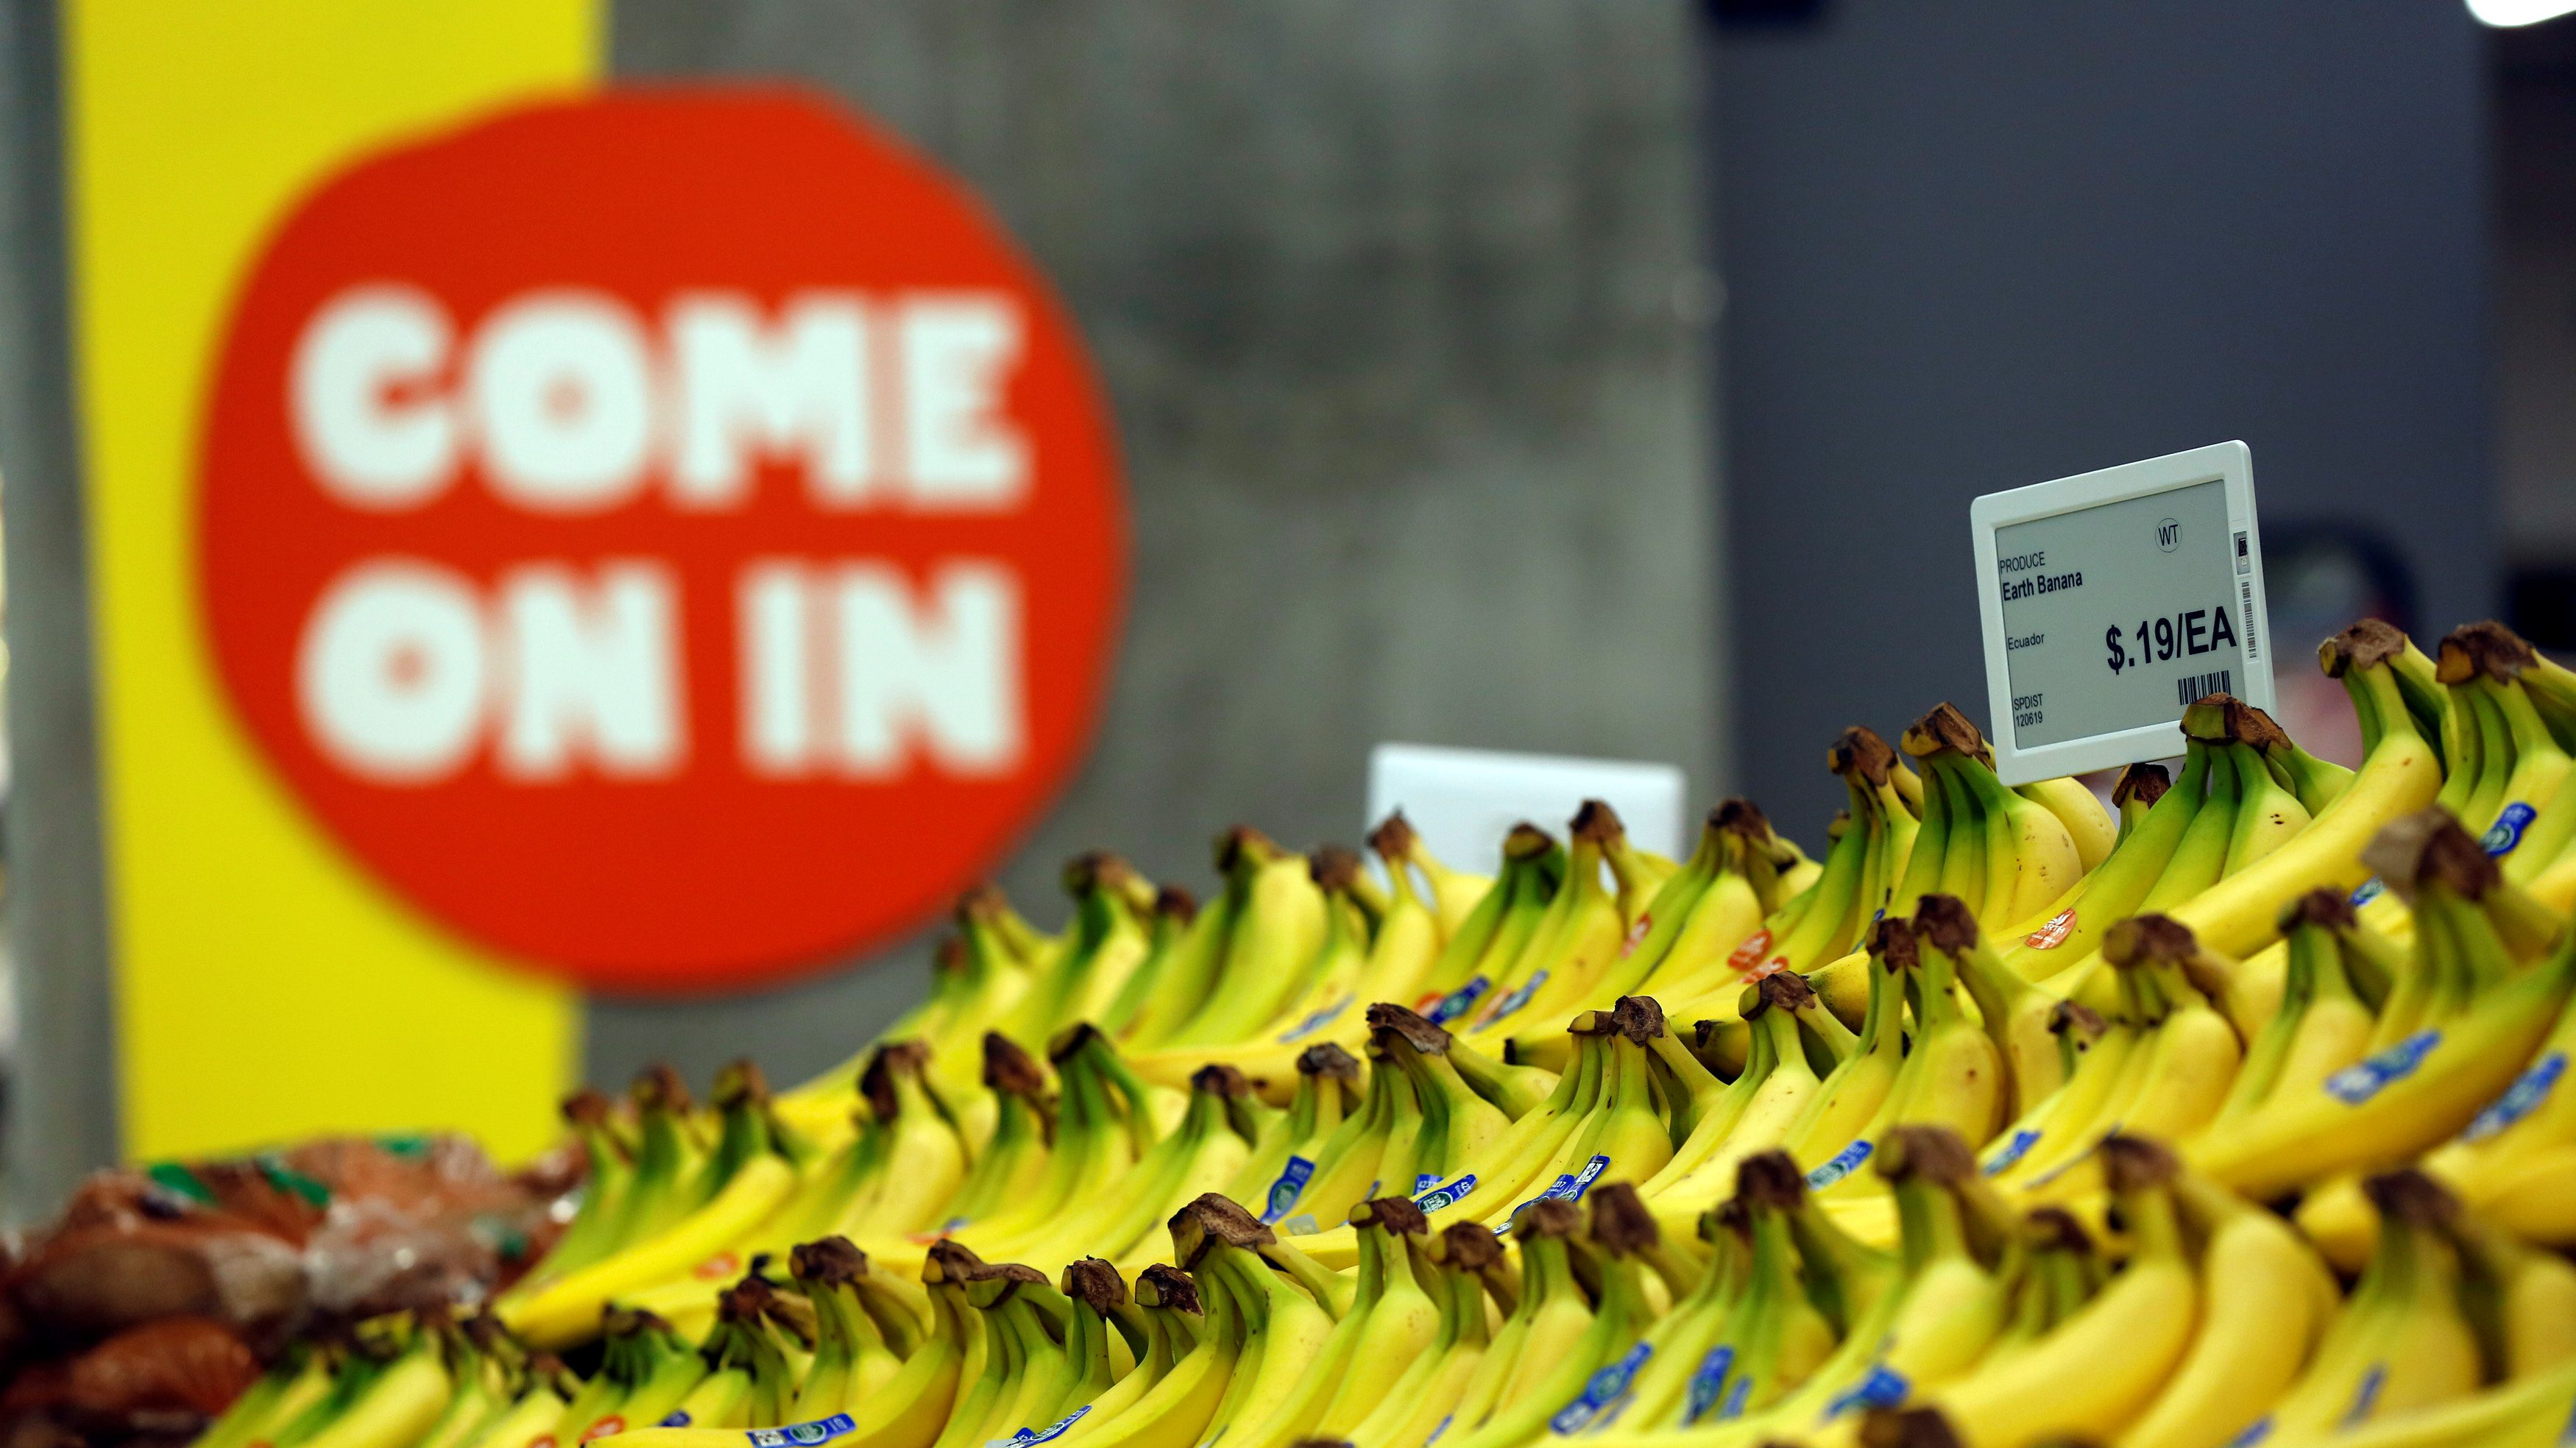 Banana prices might go down in Europe, but there are